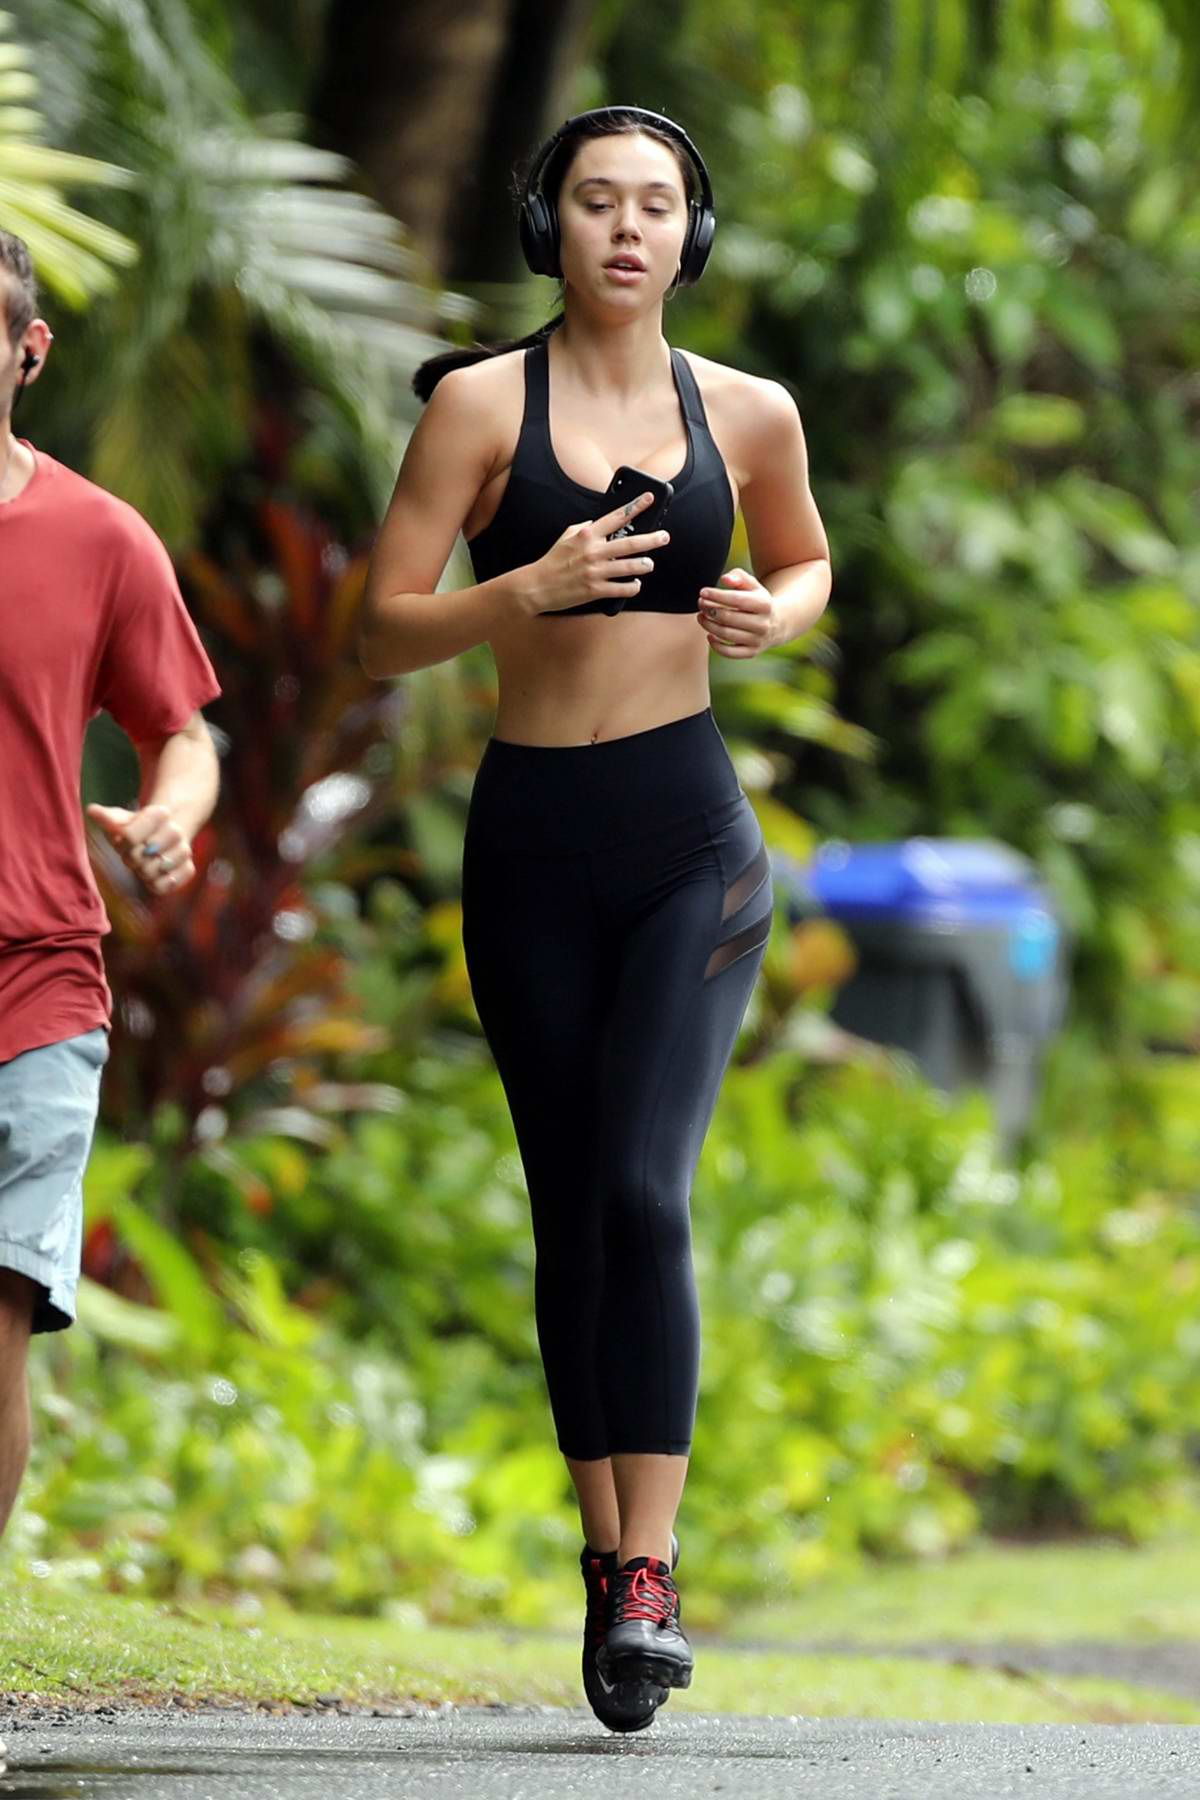 Alexis Ren shows off her amazing figure in a black crop top and leggings while out for run in Hawaii